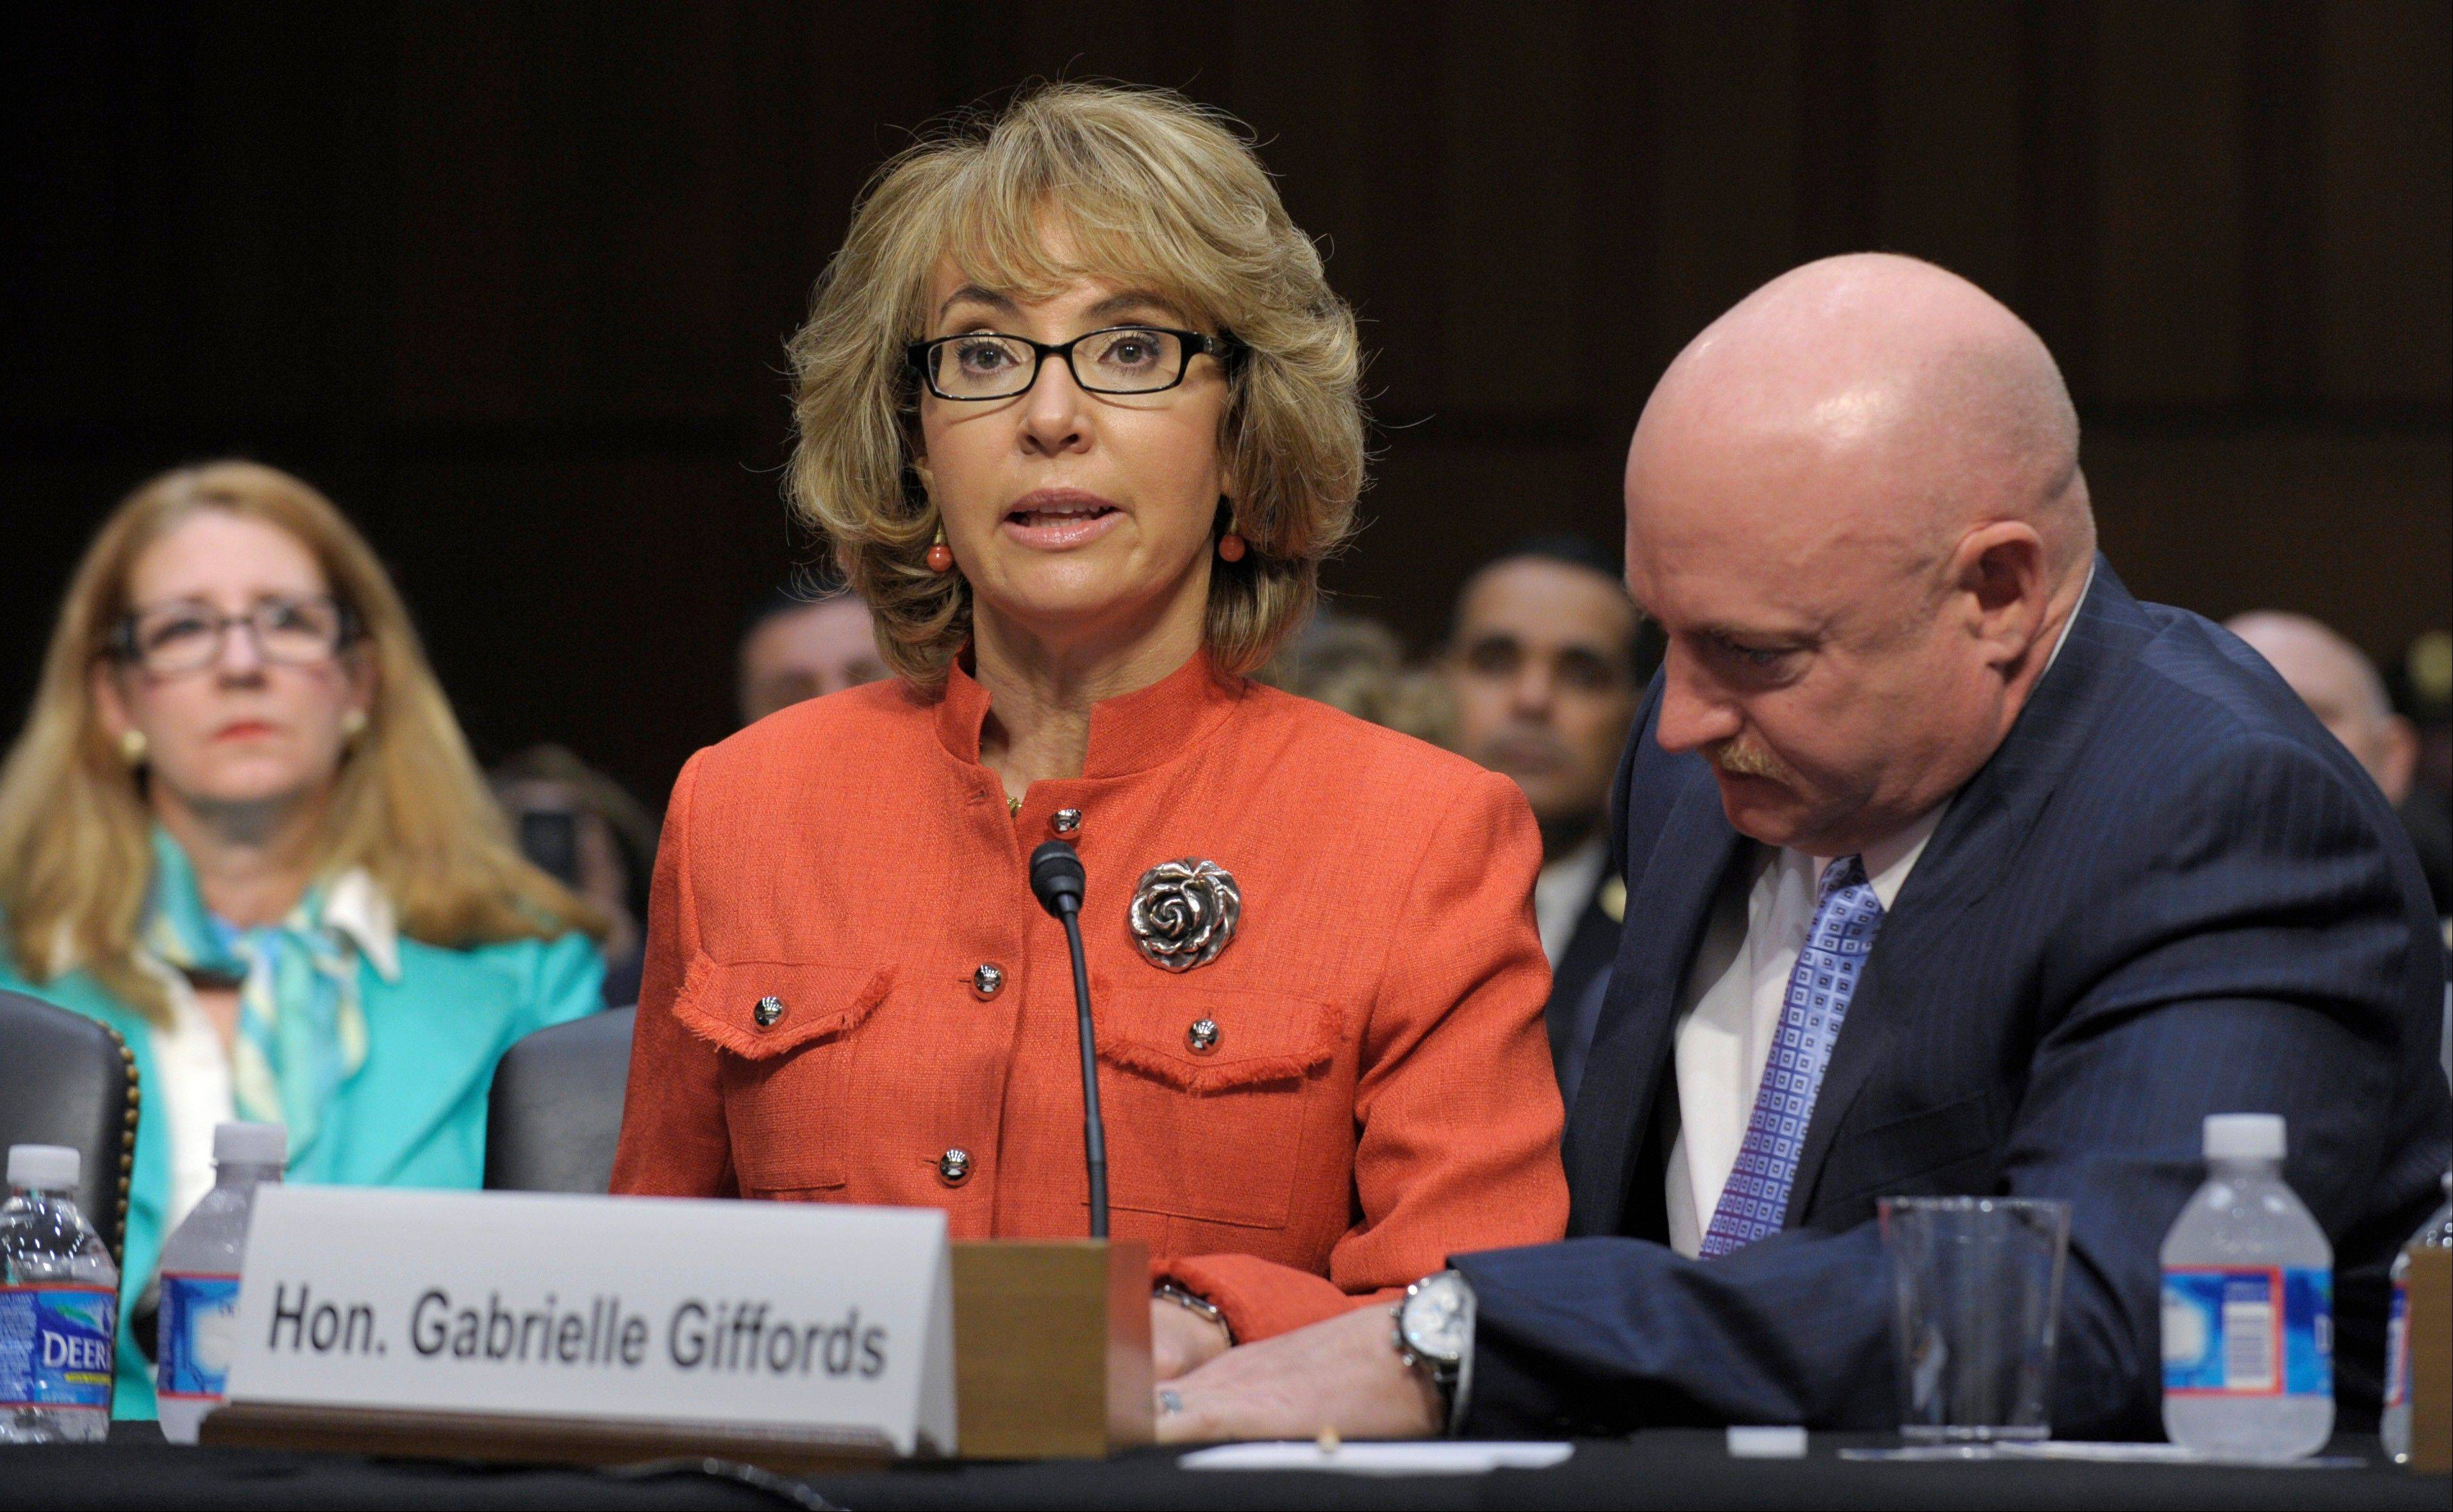 Former Arizona Rep. Gabrielle Giffords, who was seriously injured in the mass shooting that killed six people in Tucson, Ariz. two years ago, sits with her husband Mark Kelly before speaking at a Senate Judiciary Committee hearing on gun violence Wednesday.